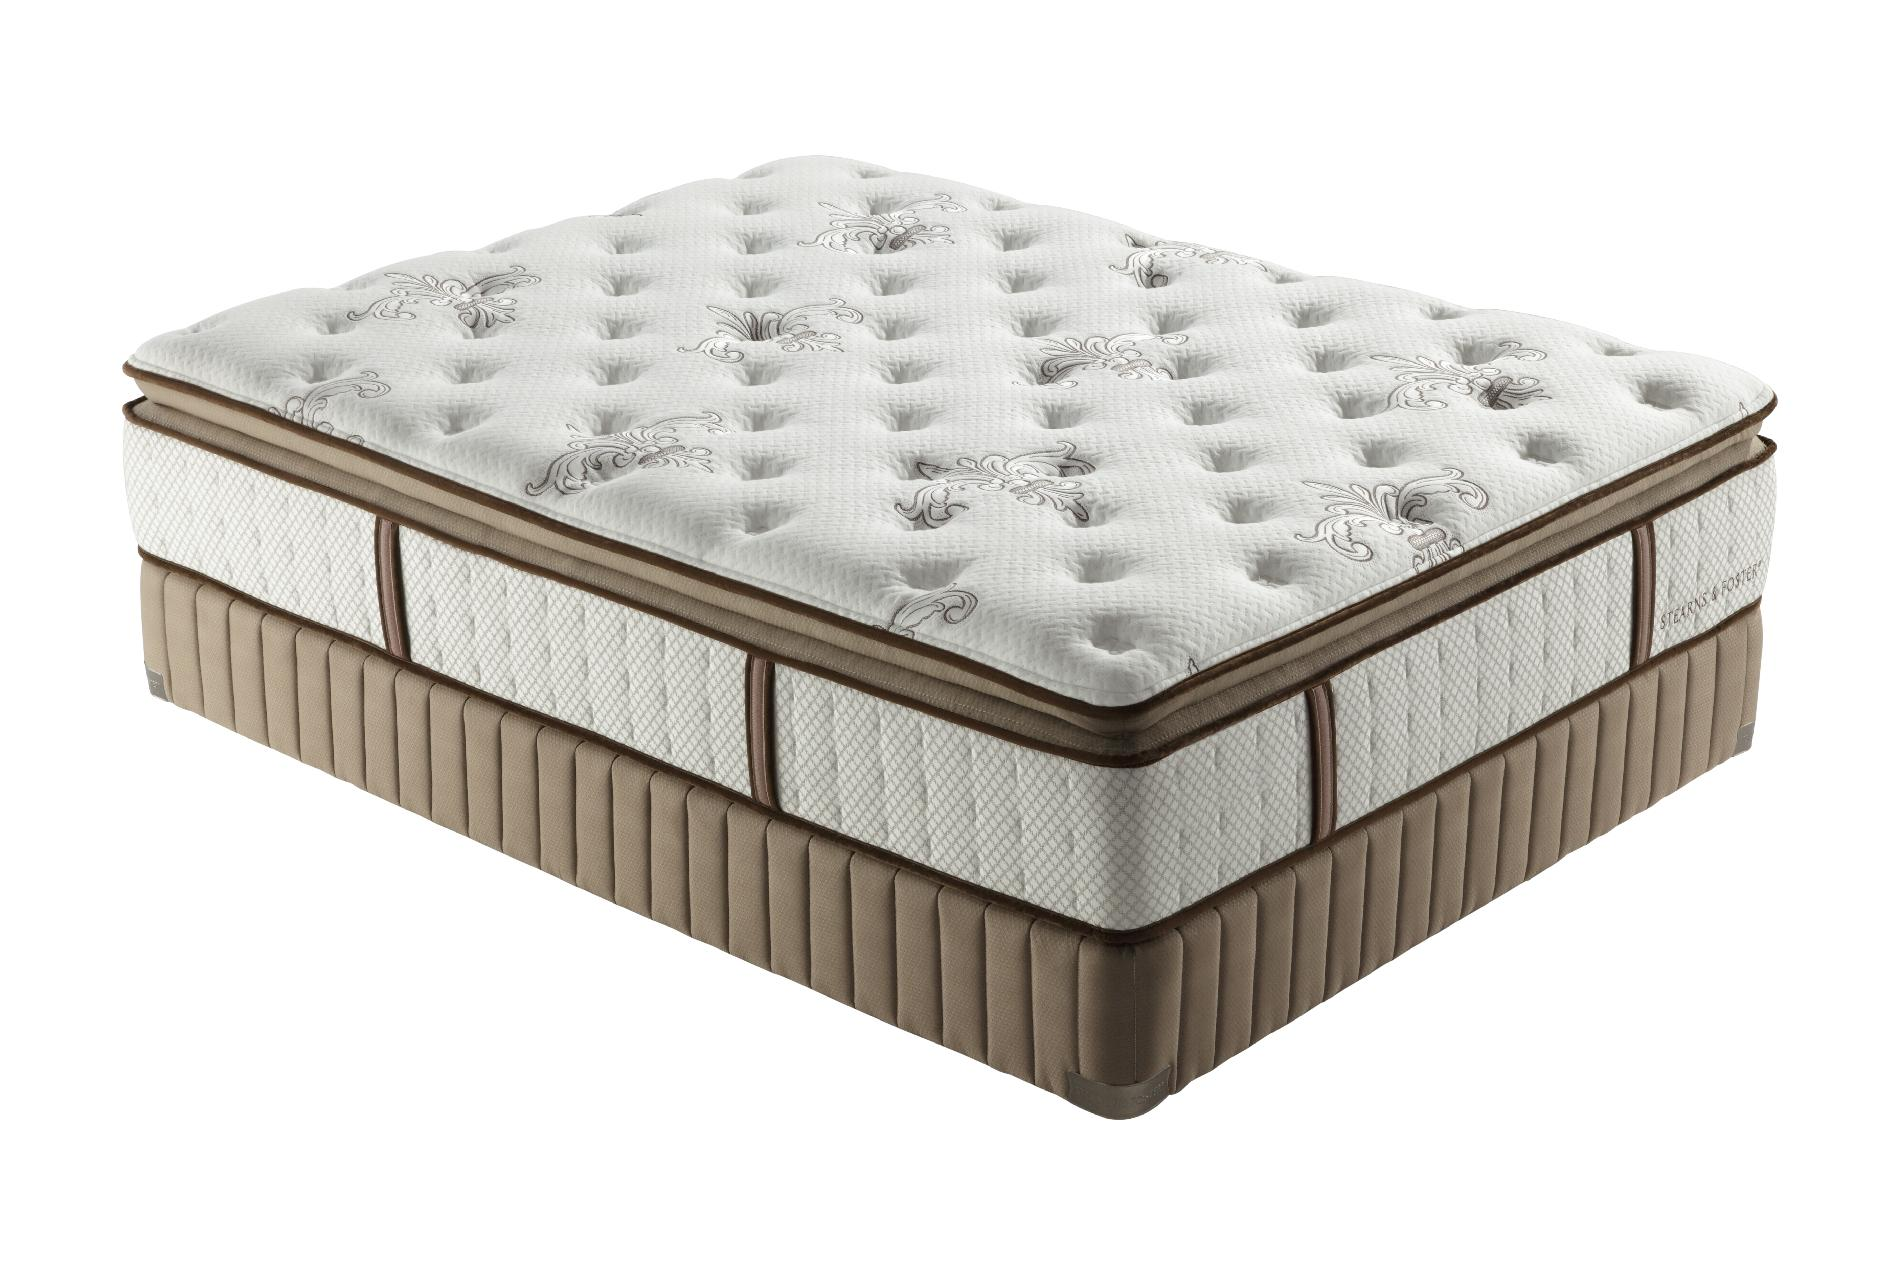 Stearns & Foster Estate Angie Firm Euro Pillowtop King Mattress Only